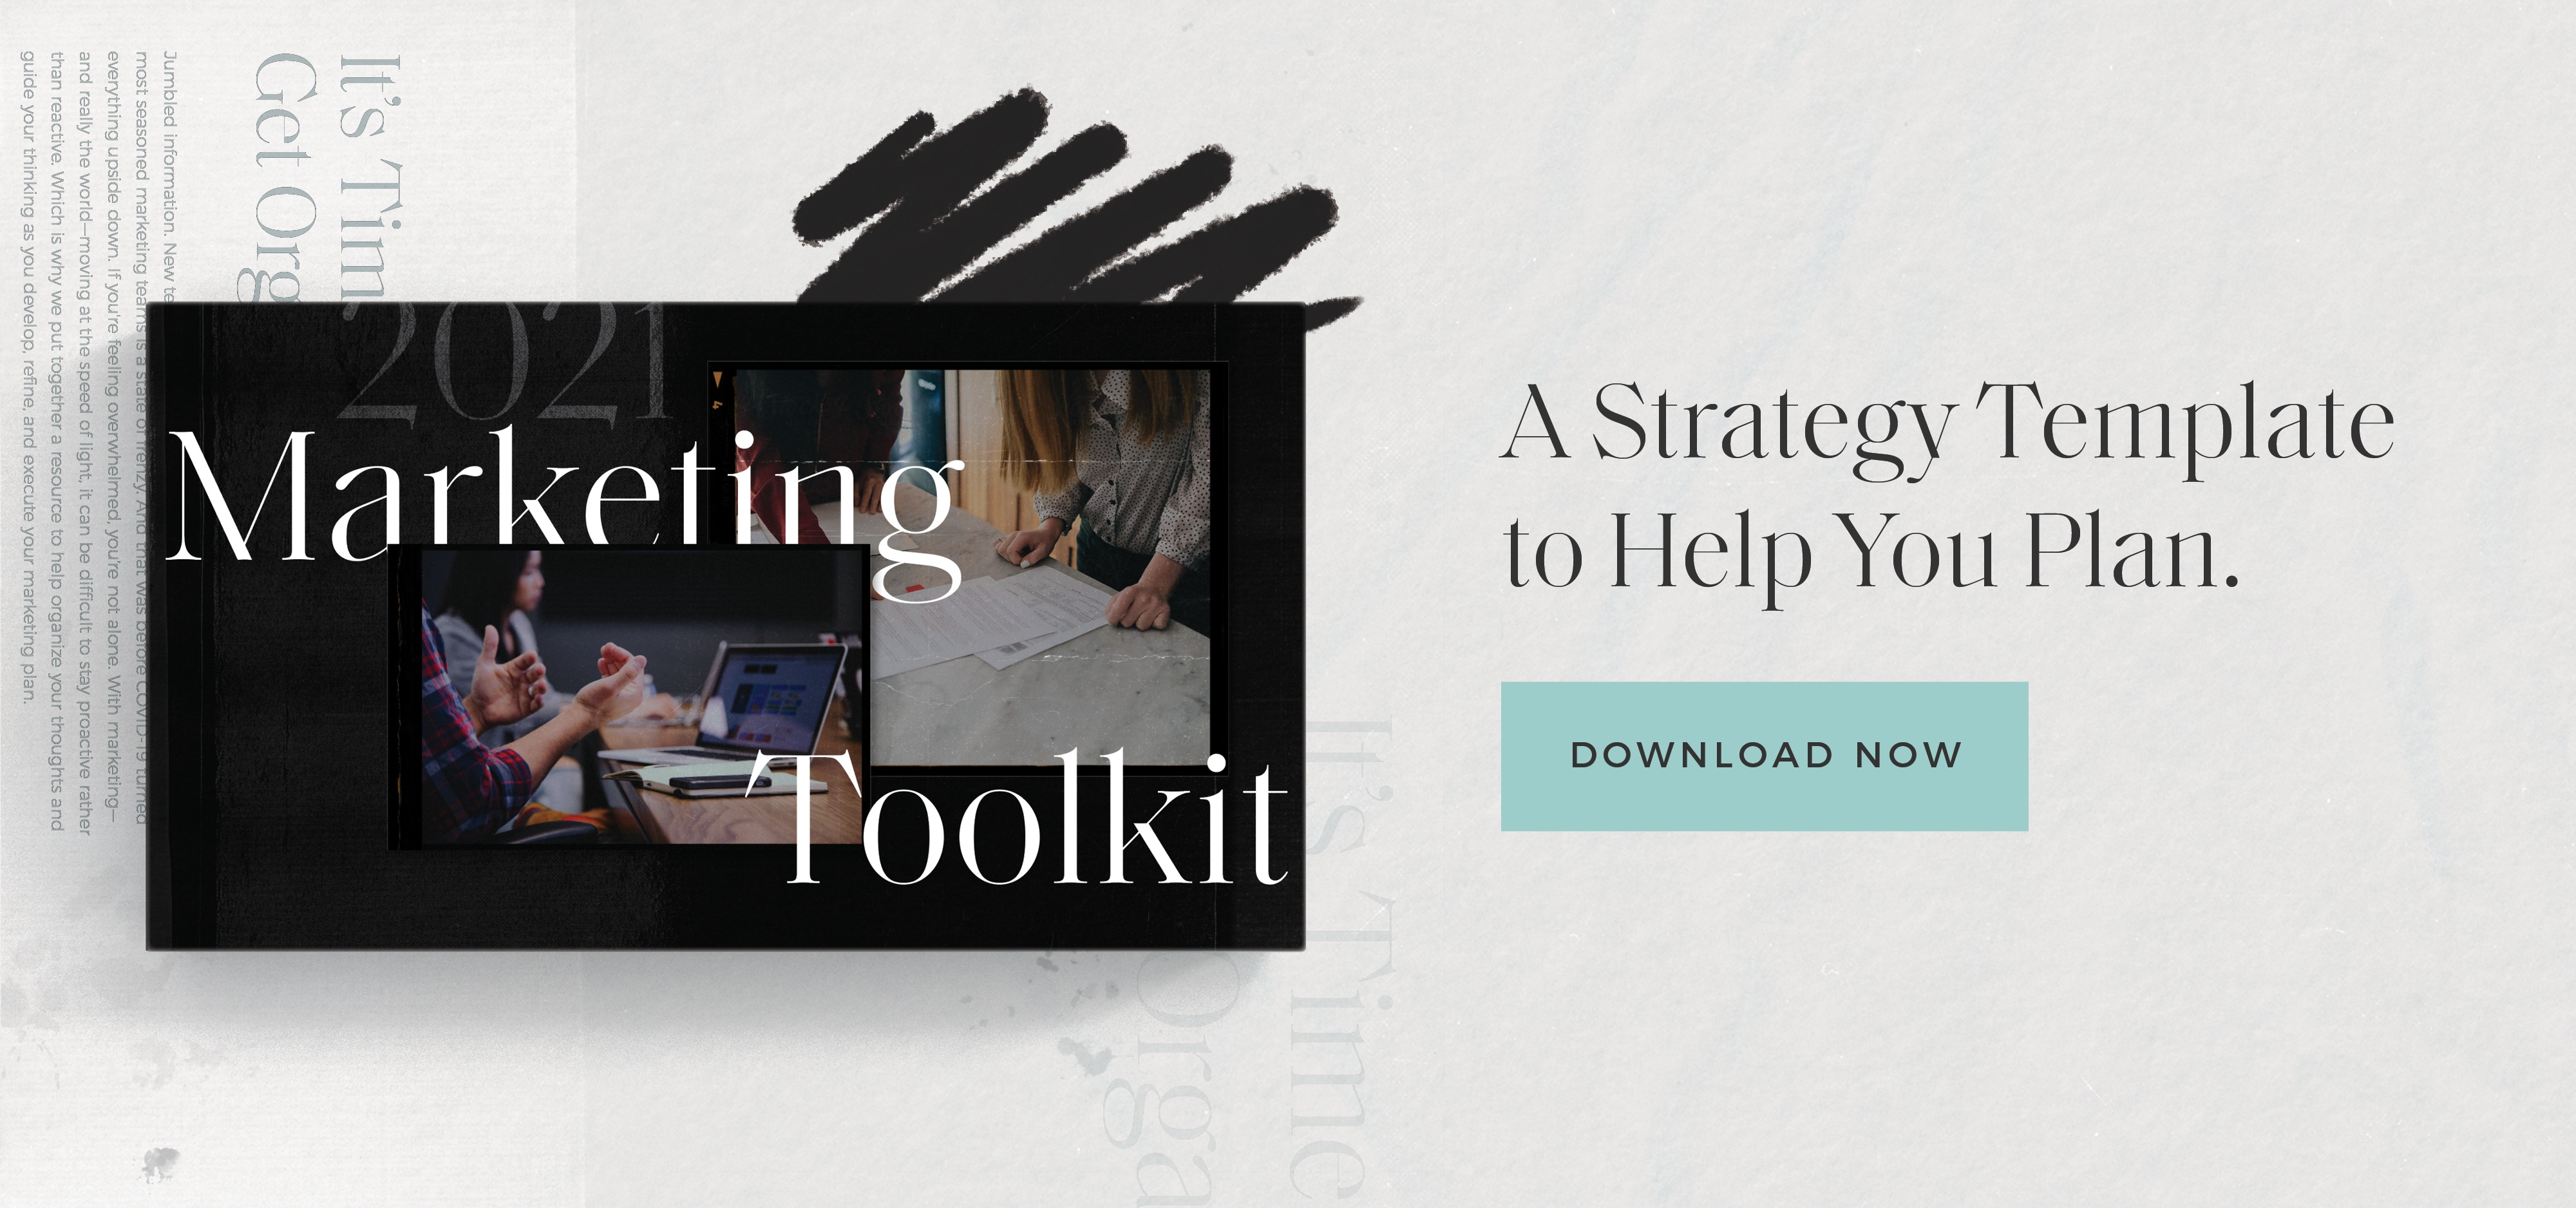 Marketing Toolkit CTA